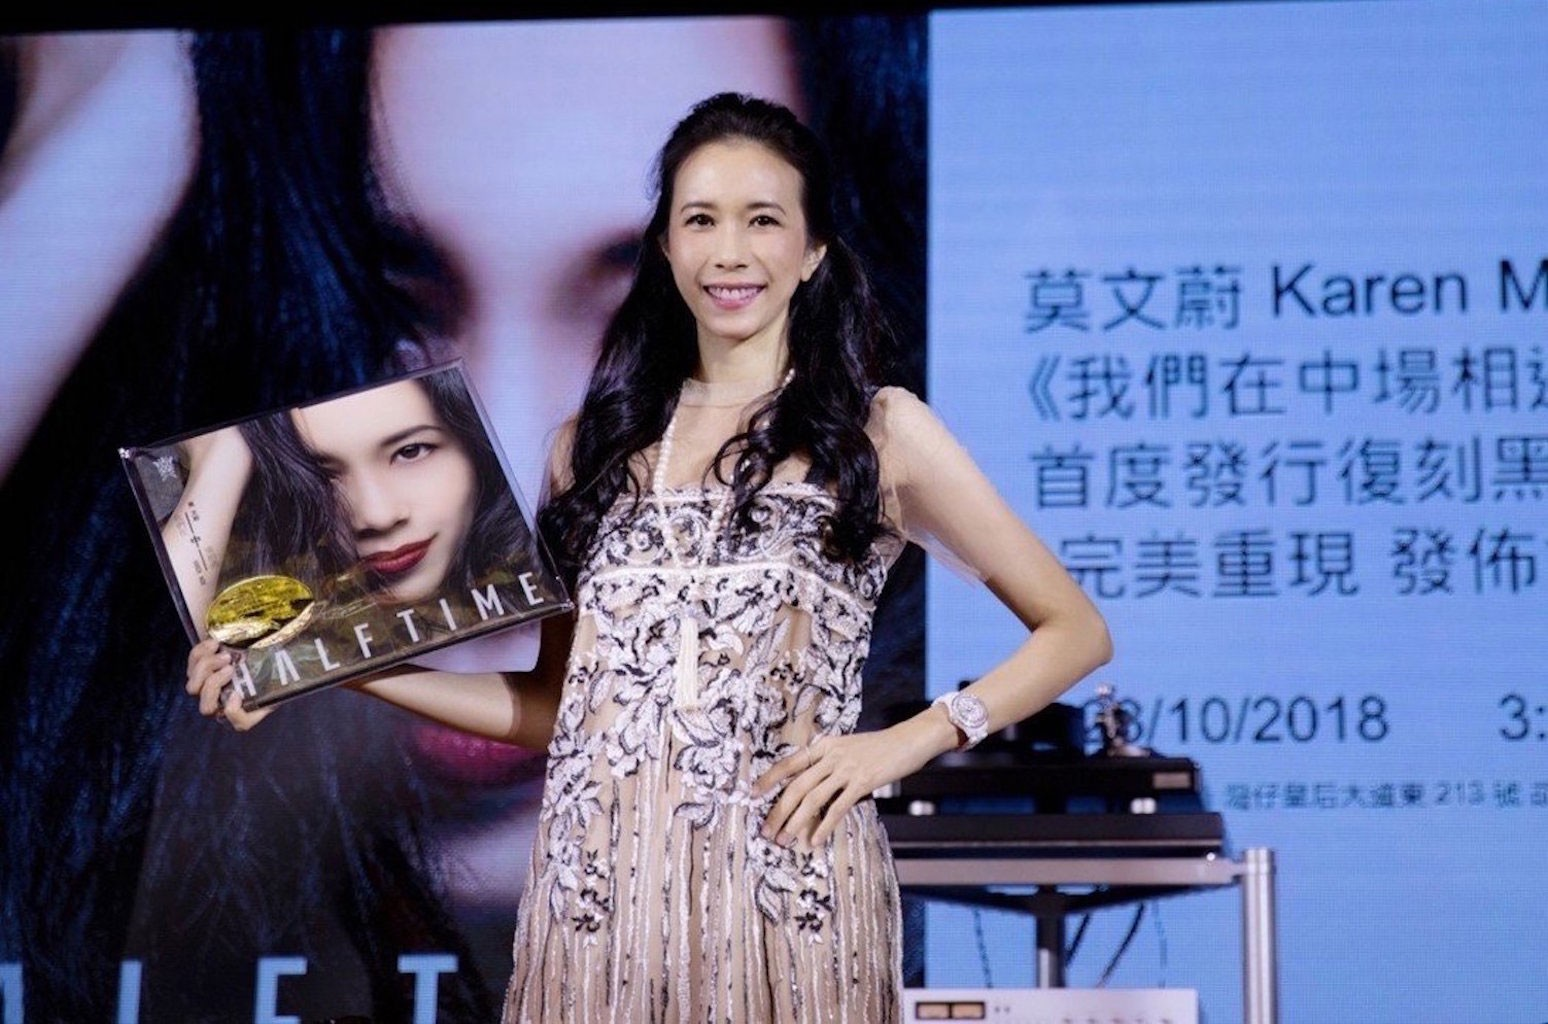 """Karen Mok attends the release ceremony for her new vinyl album, """"Half Time,""""  on Oct. 23, 2018, in Hong Kong.  Courtesy of Billboard Radio China/ Sony Music Hong Kong"""